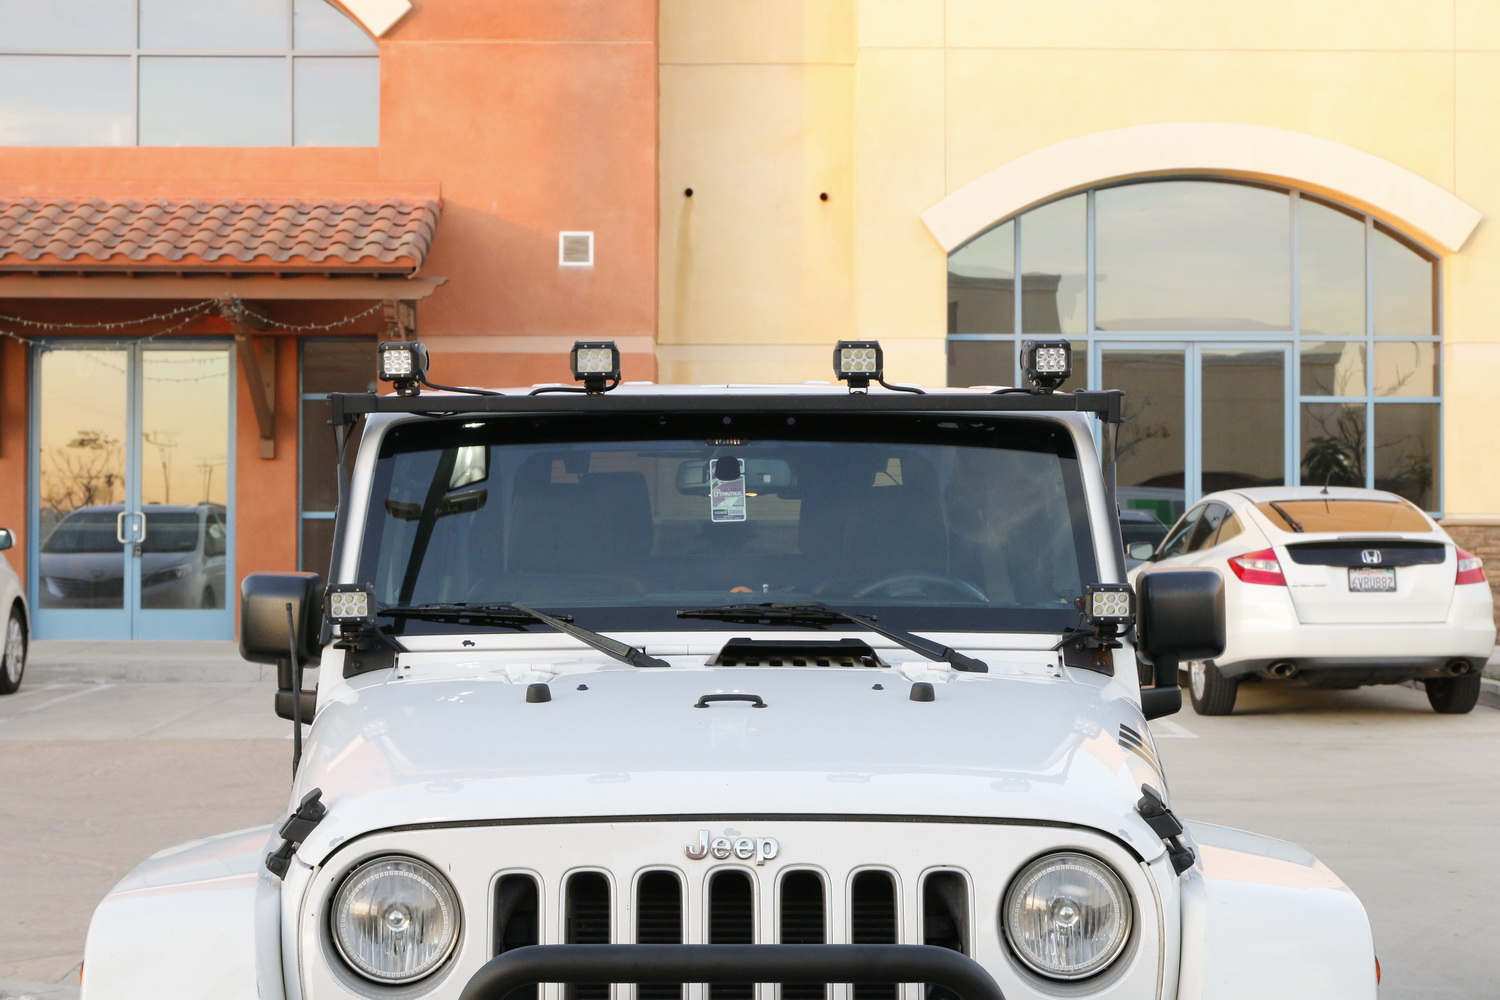 How Many Led Lights Can You Equip Onto A Jeep Wrangler Ijdmtoy Light Mounts And While It Provides Sufficient Amount Of For Rural Areas Or Nighttime Occasions There Is Always Room More Lighting Including The Pillar